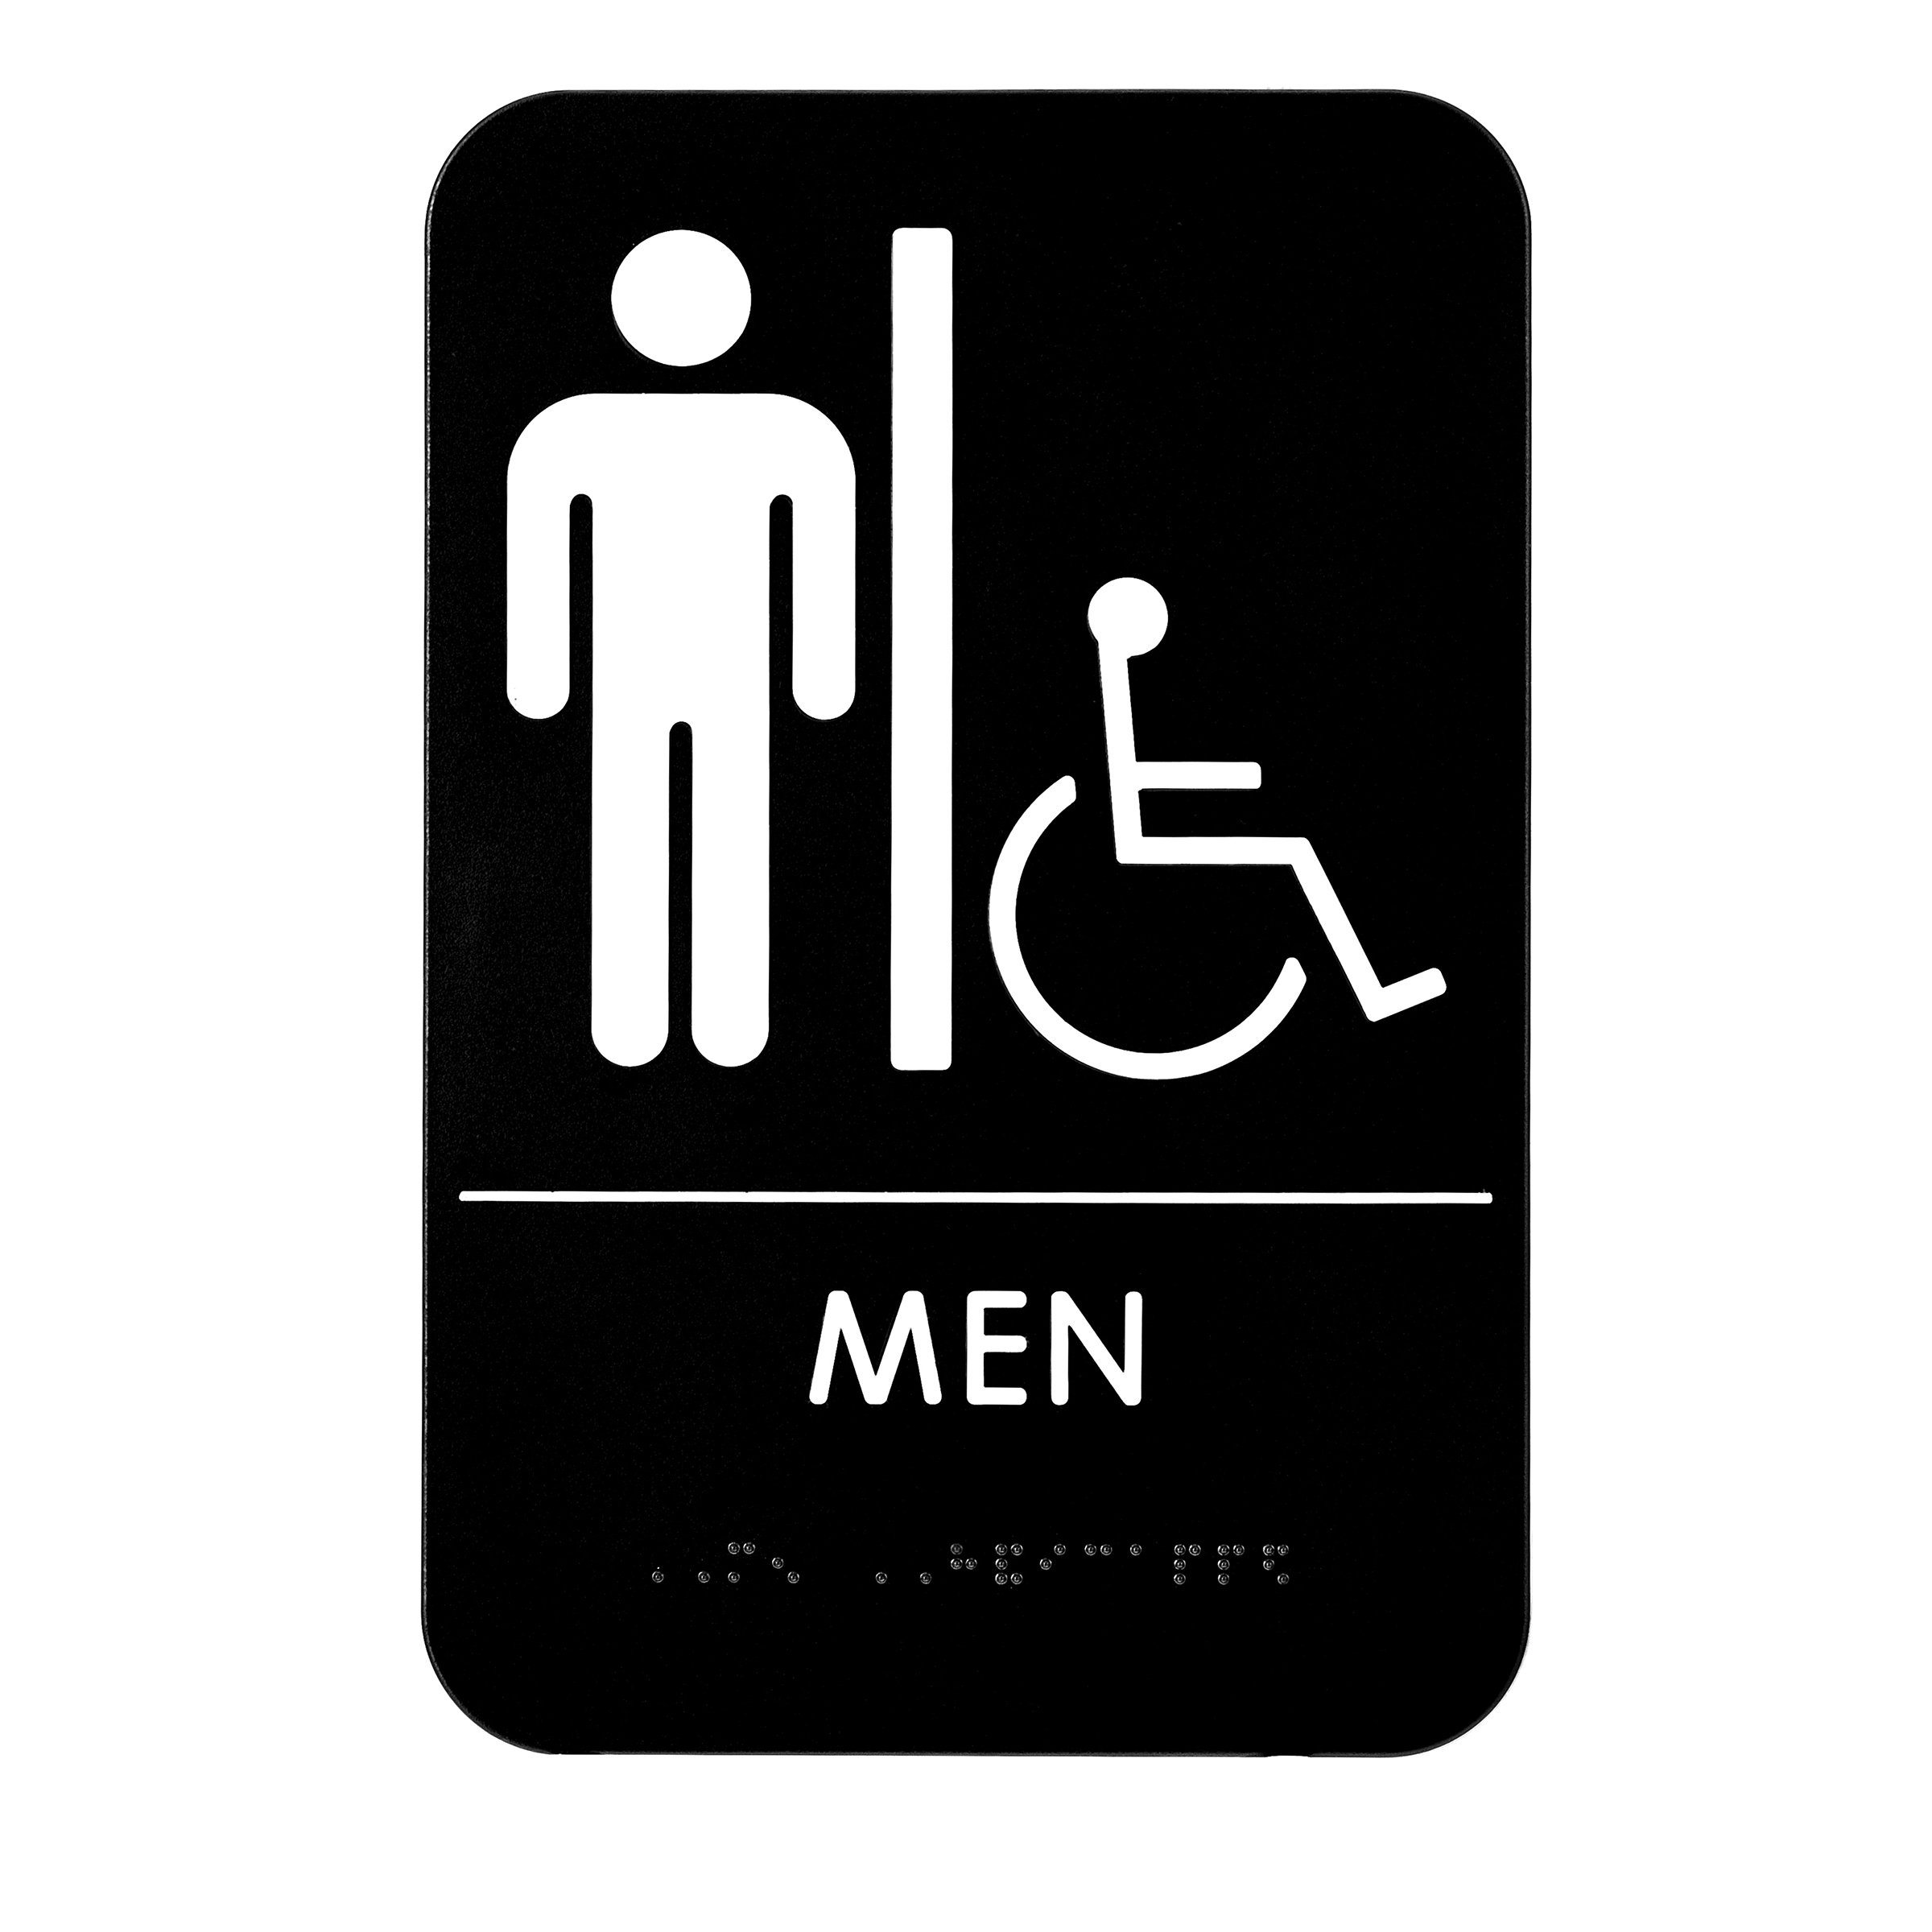 Alpine Industries Mens Braille Handicapped Restroom Sign, Black/White, ADA Compliant, 6x9